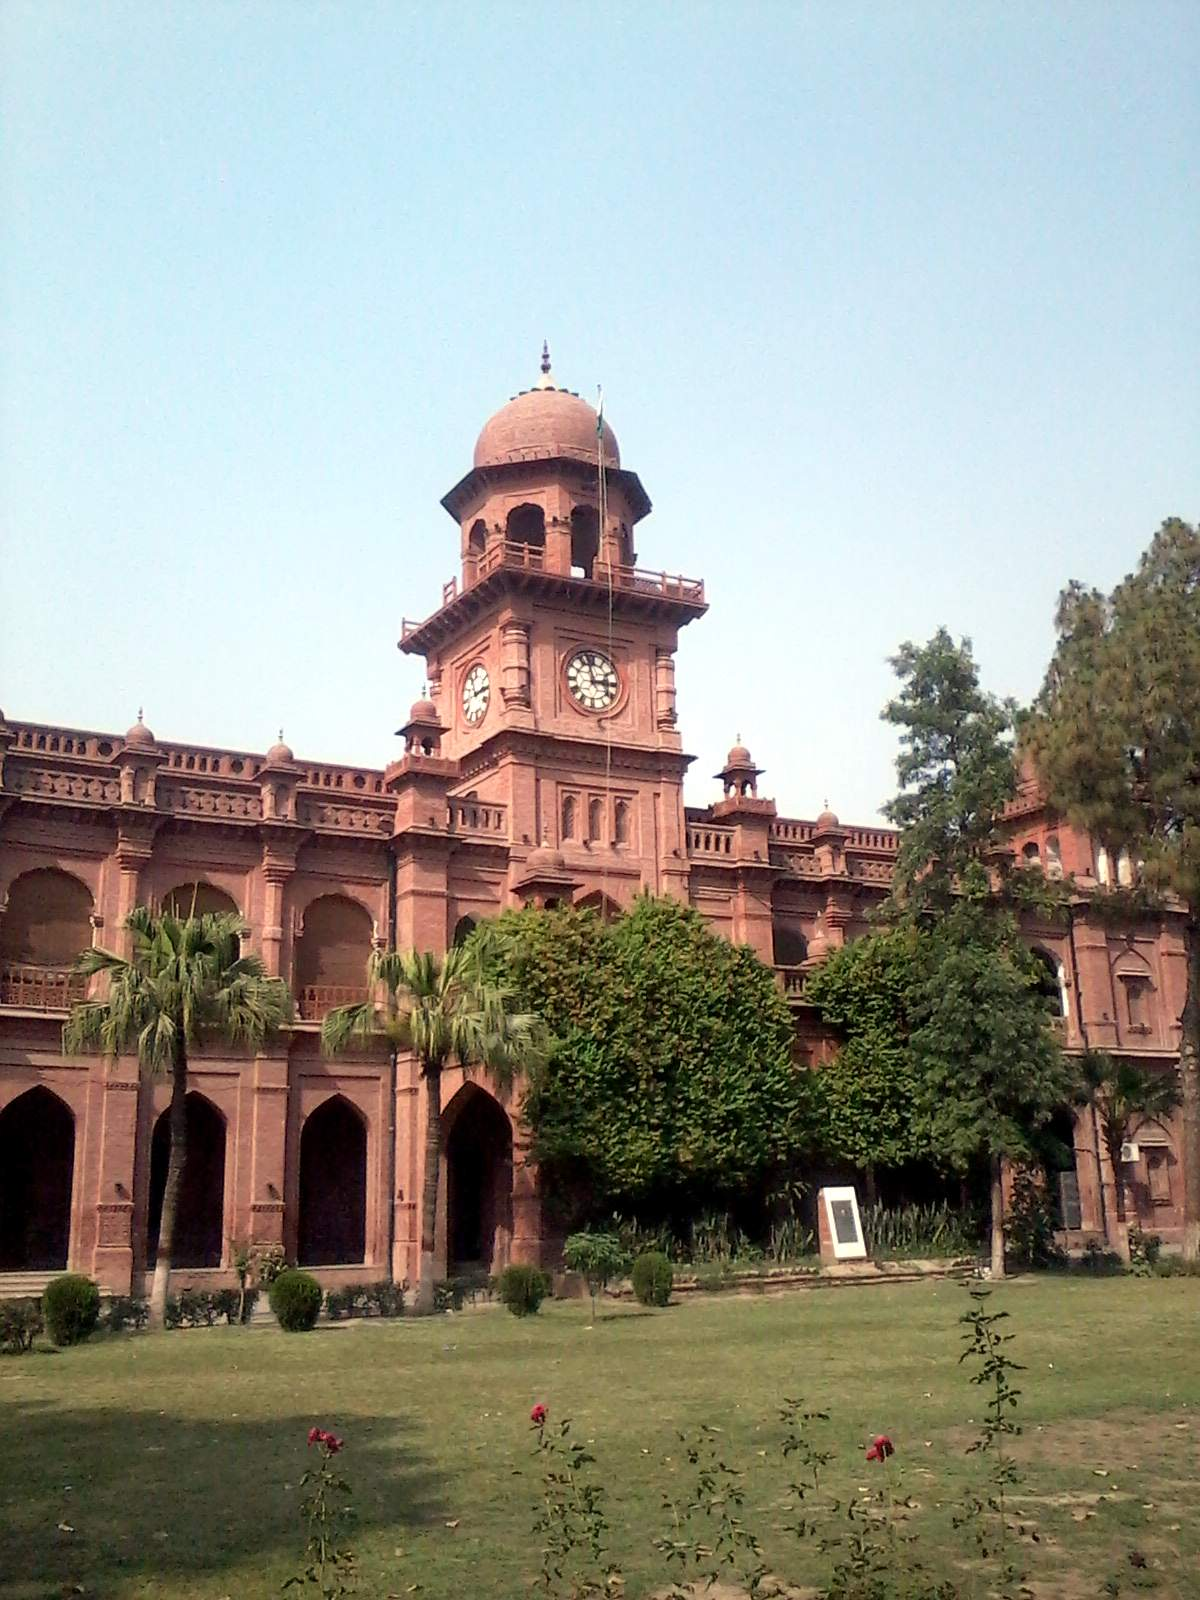 punjab university lahore thesis A review of the dr iqbal mujaddidi collection at punjab university, lahore, pakistan for scholars of islam in south asia and afghanistan, the iqbal m.